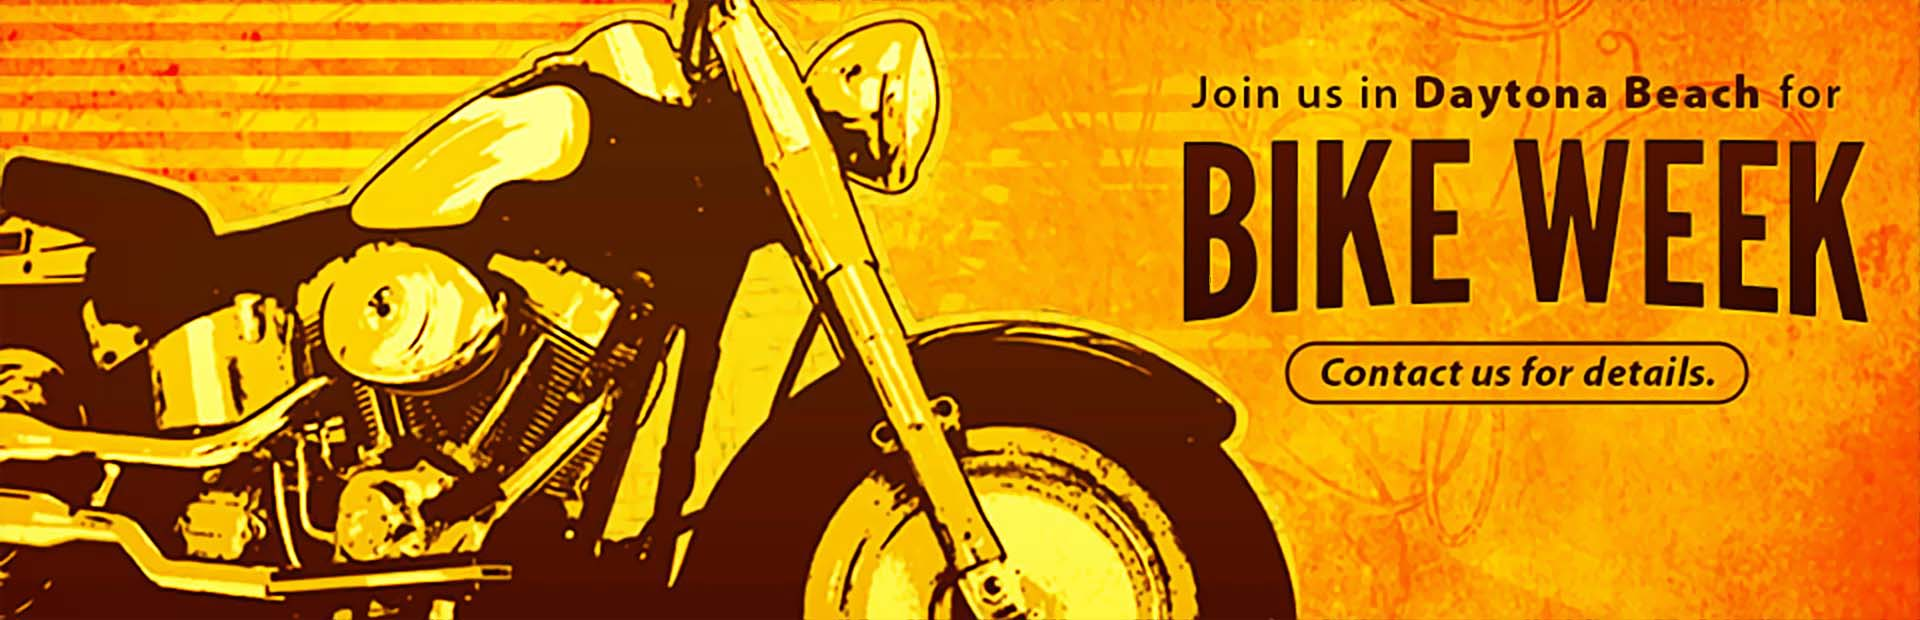 Join us in Daytona Beach for Bike Week! Contact us for details.